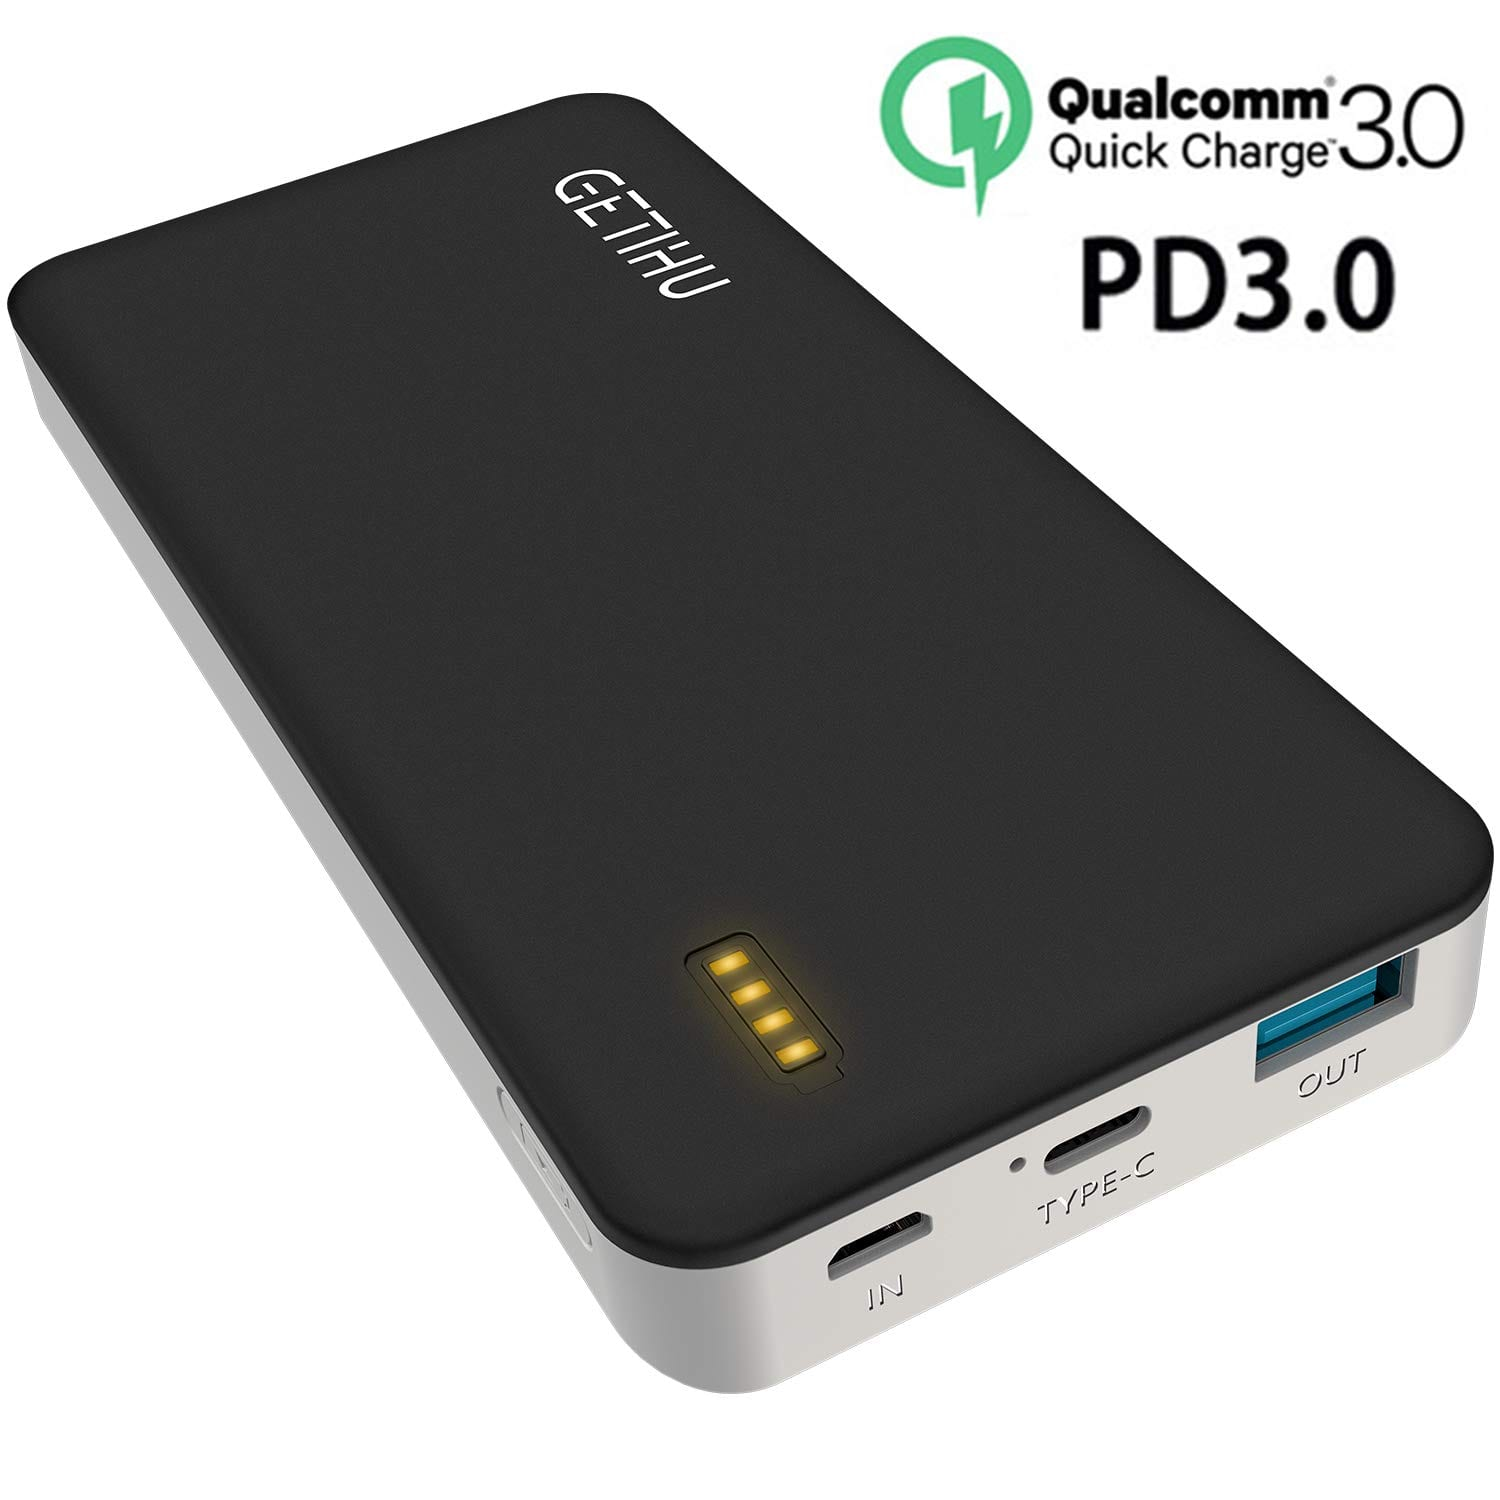 GETIHU USB C 10000mAh PD/QC3.0 Power Bank 18W $13 (Amazon)